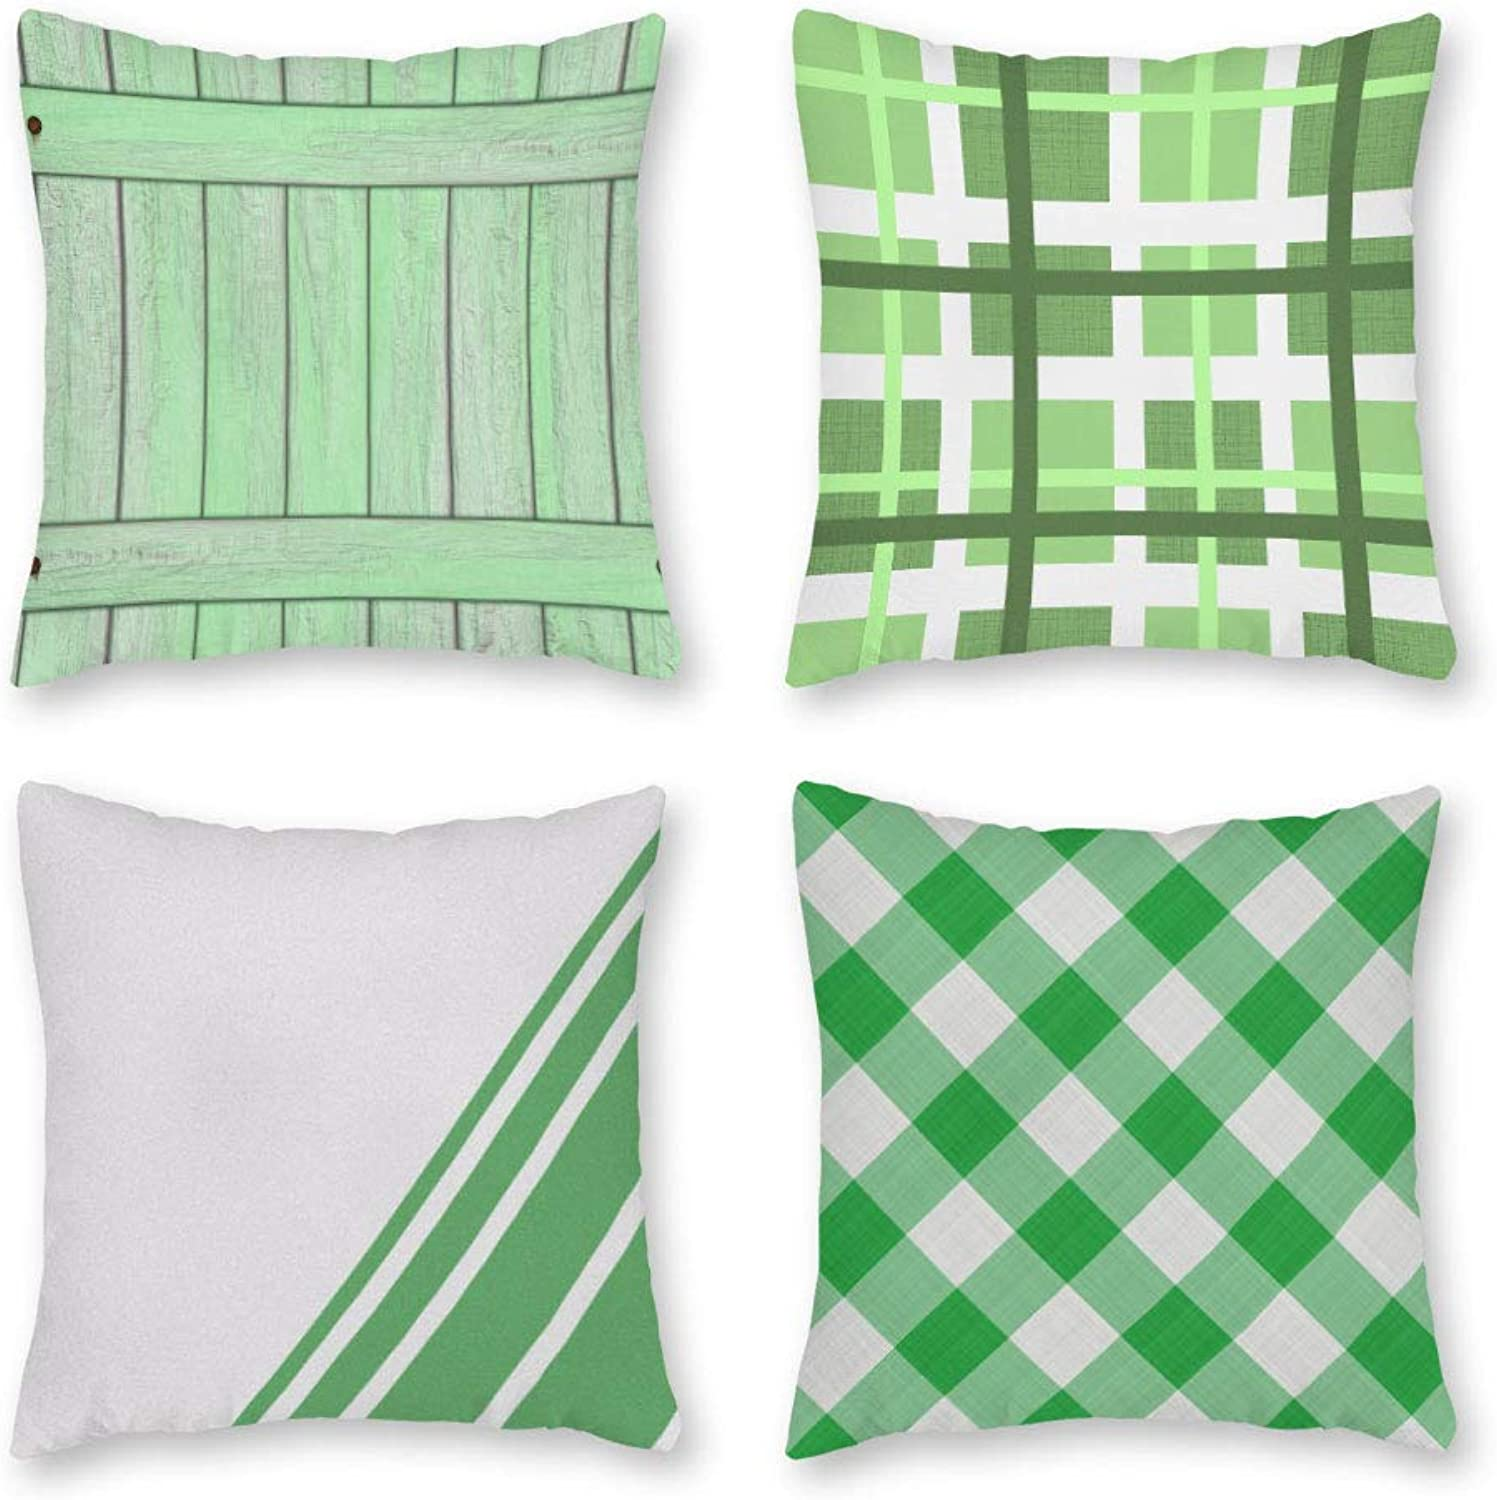 FabricMCC Pack of 4, Geometric Modern Home Decor Soft Canvas Plaid Stripes Square Throw Pillow Covers, 18 X 18 Inches Cushion Cases Green Wood Sign Pattern